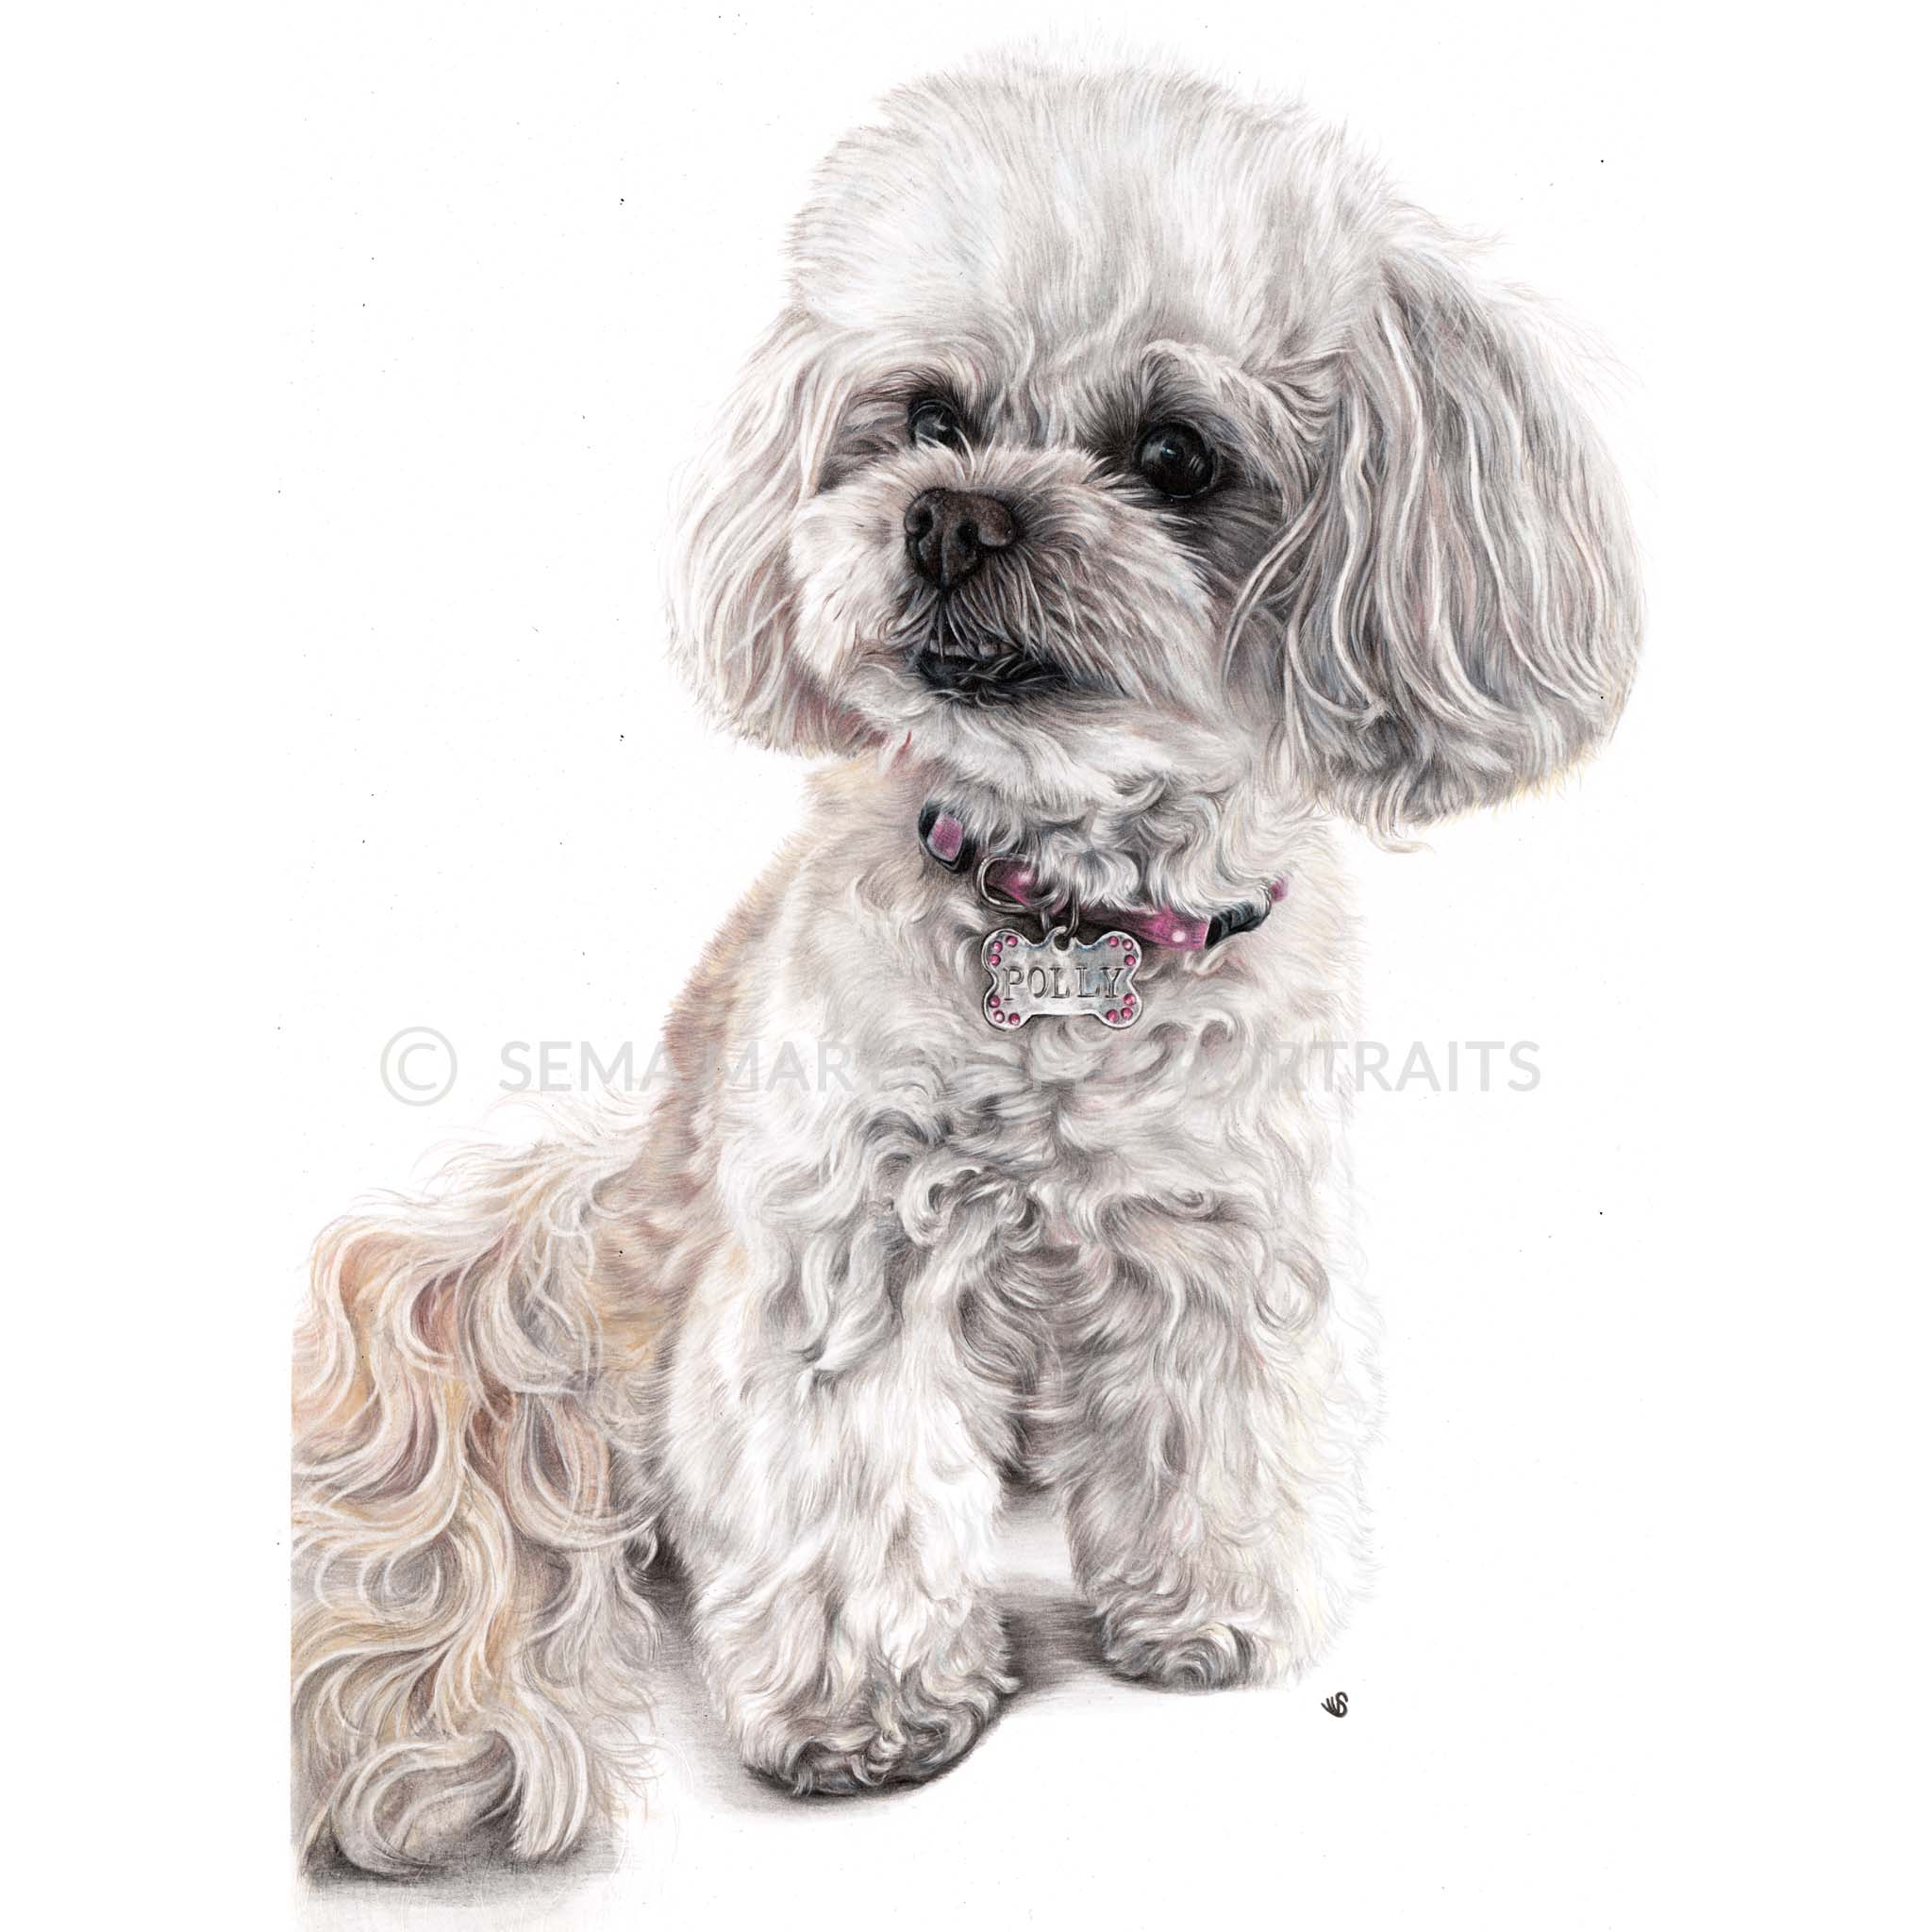 'Polly' - Australia, 16.5 x 11.7 inches, 2019, Colour pencil portrait of a chinpoo